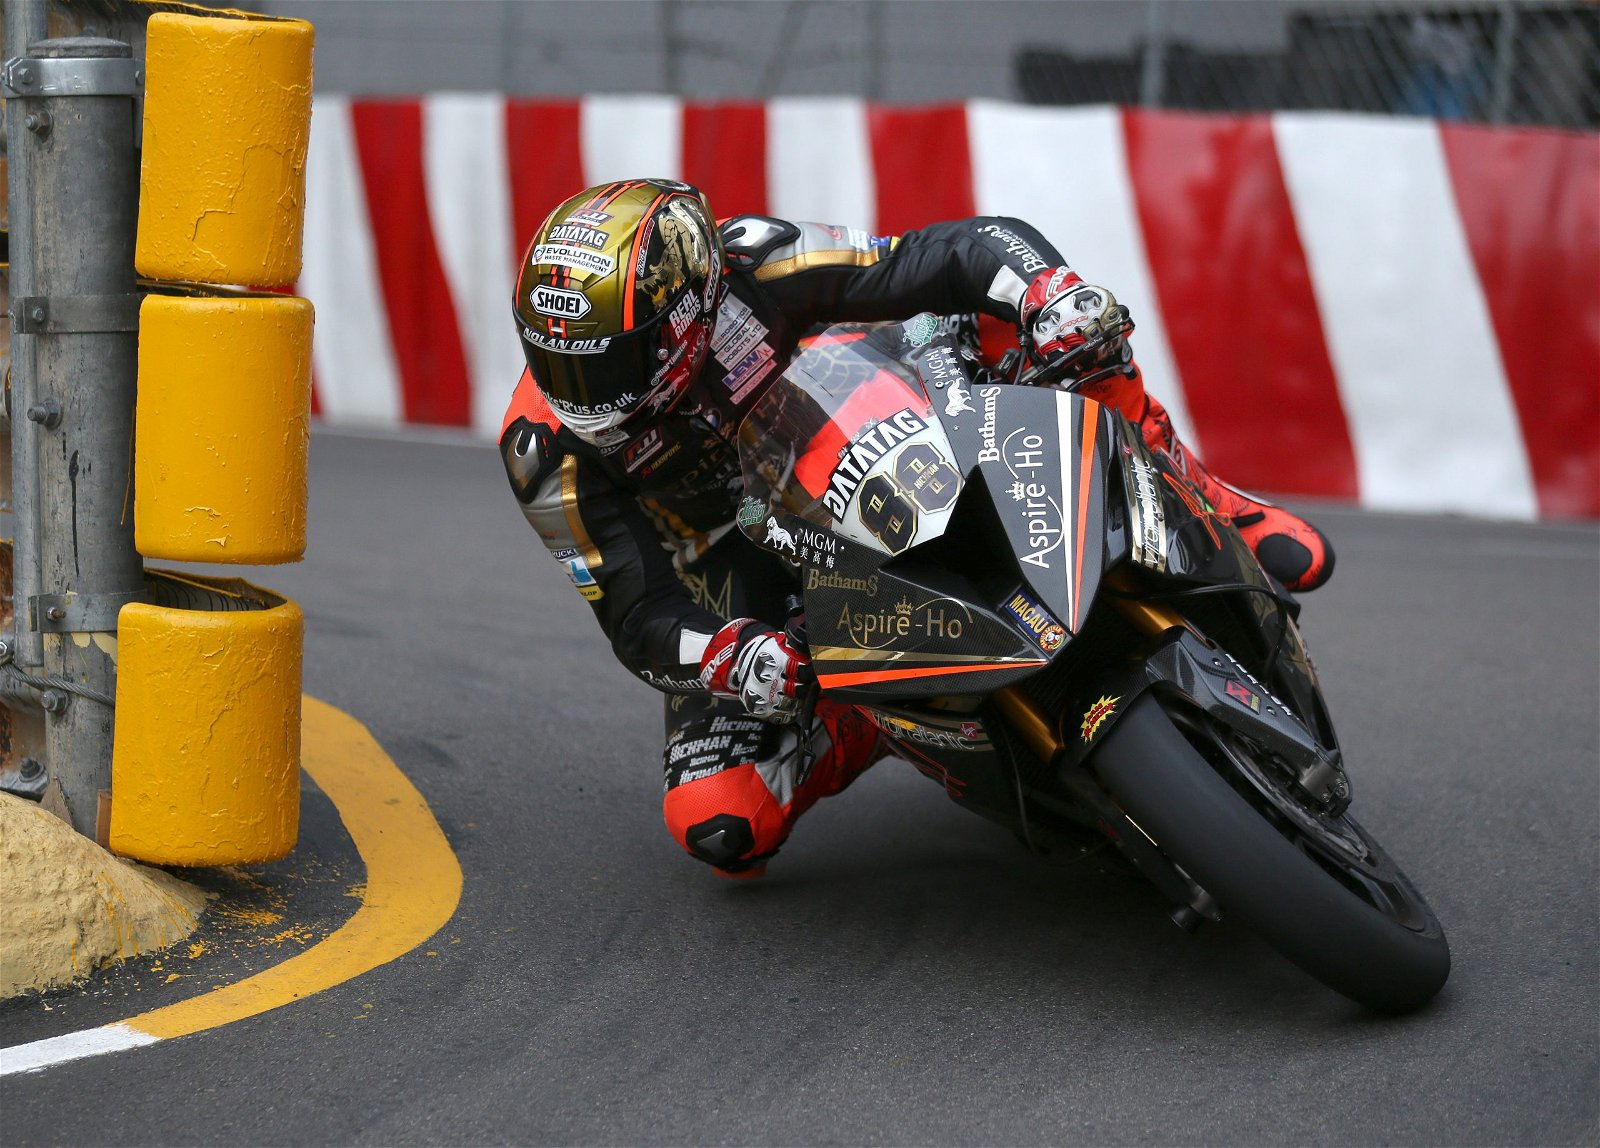 Peter Hickman in action at 2018 Macau GP